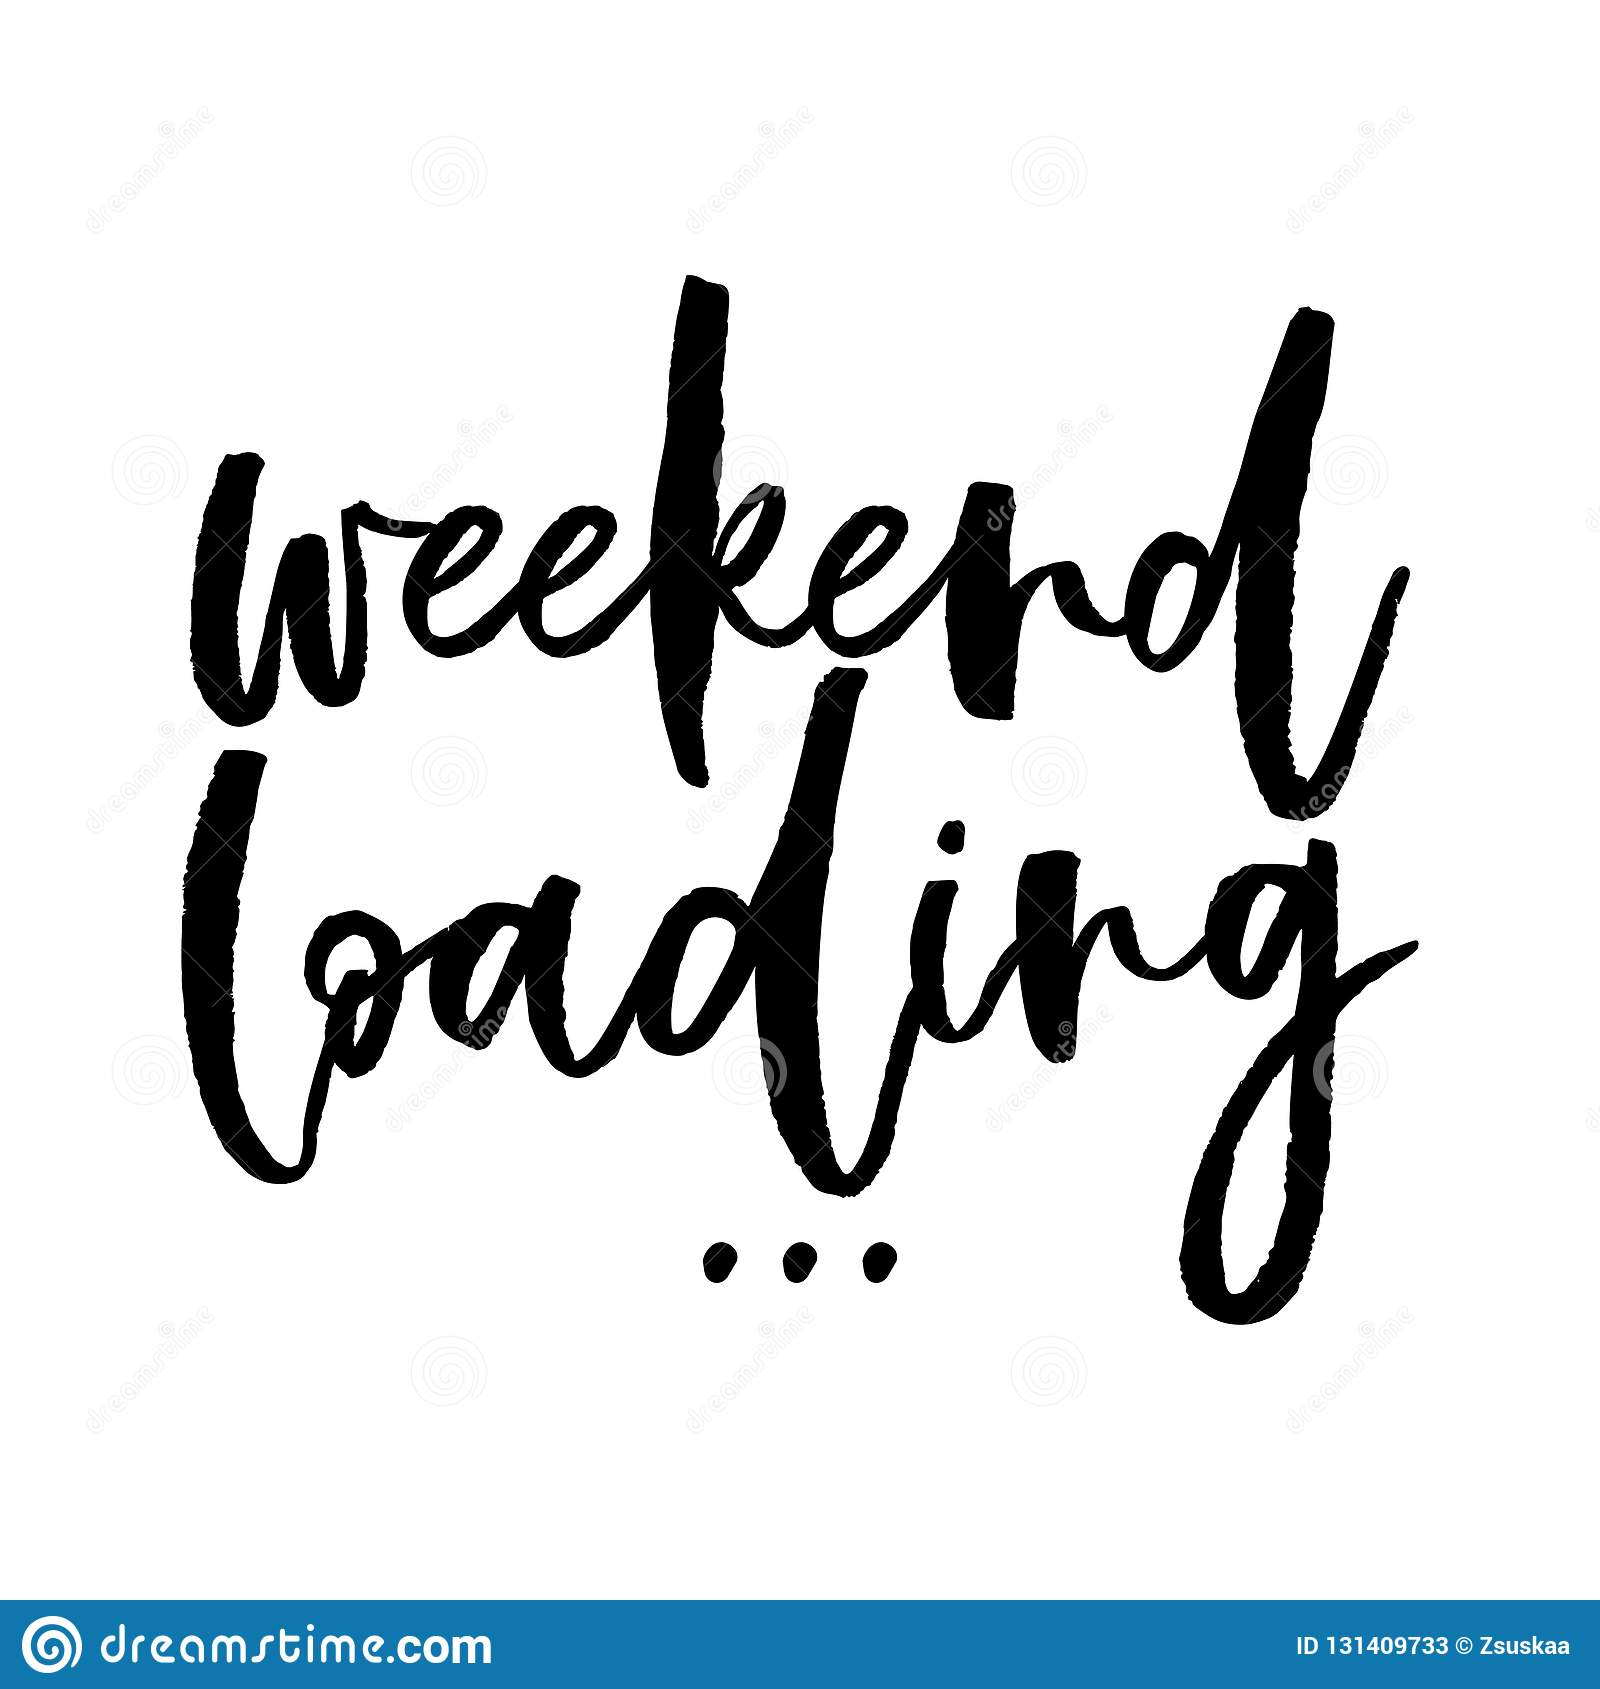 Weekend loading - inspirational lettering design for posters, flyers, t-shirts, cards, invitations, stickers, banners.